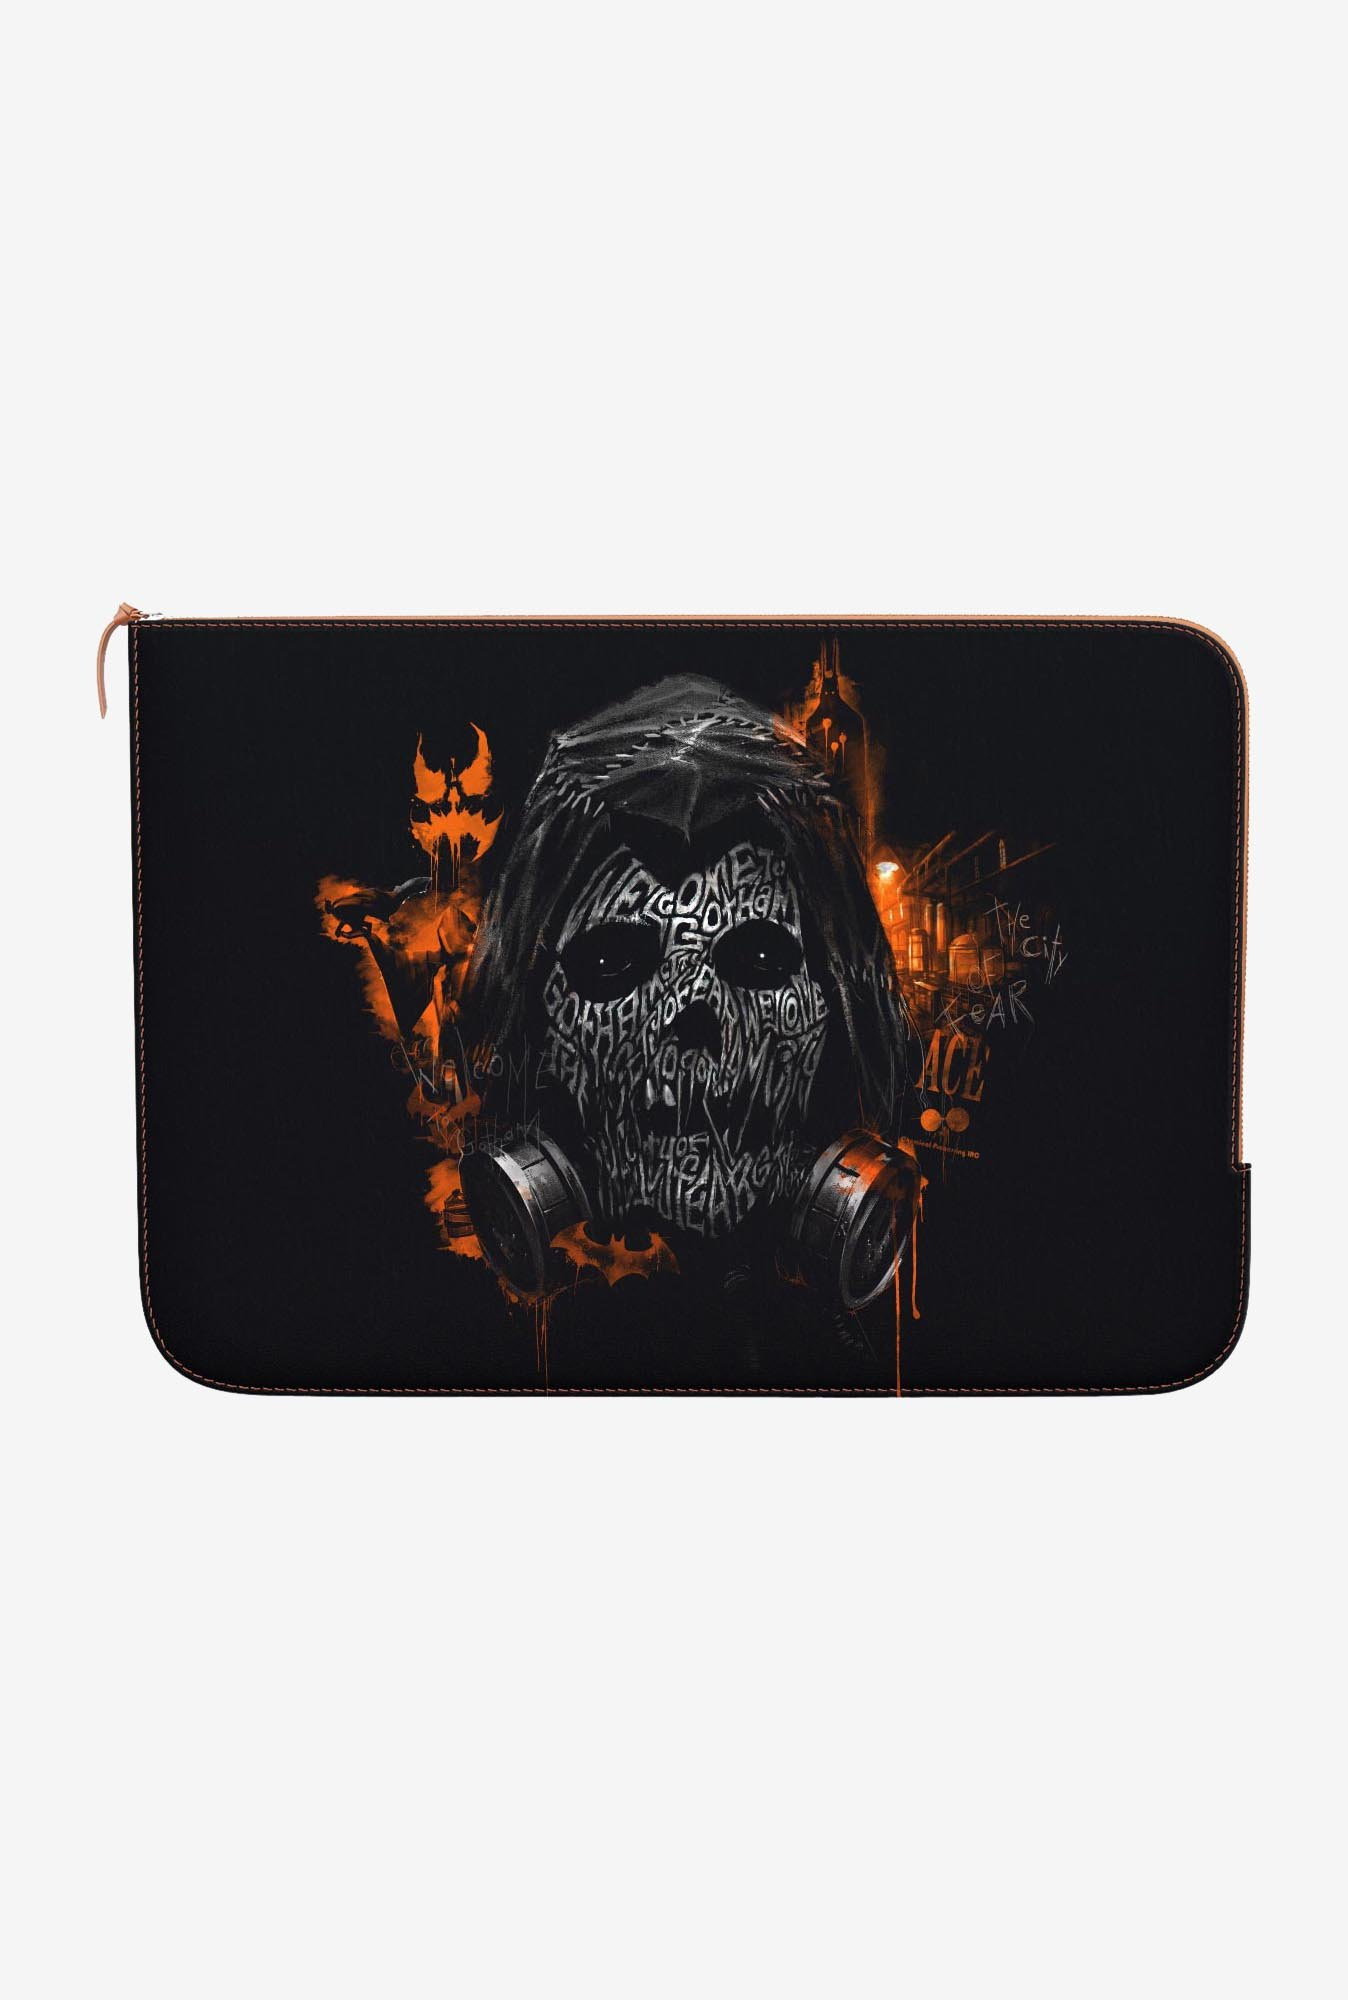 DailyObjects Scarecrow Neon MacBook Pro 15 Zippered Sleeve